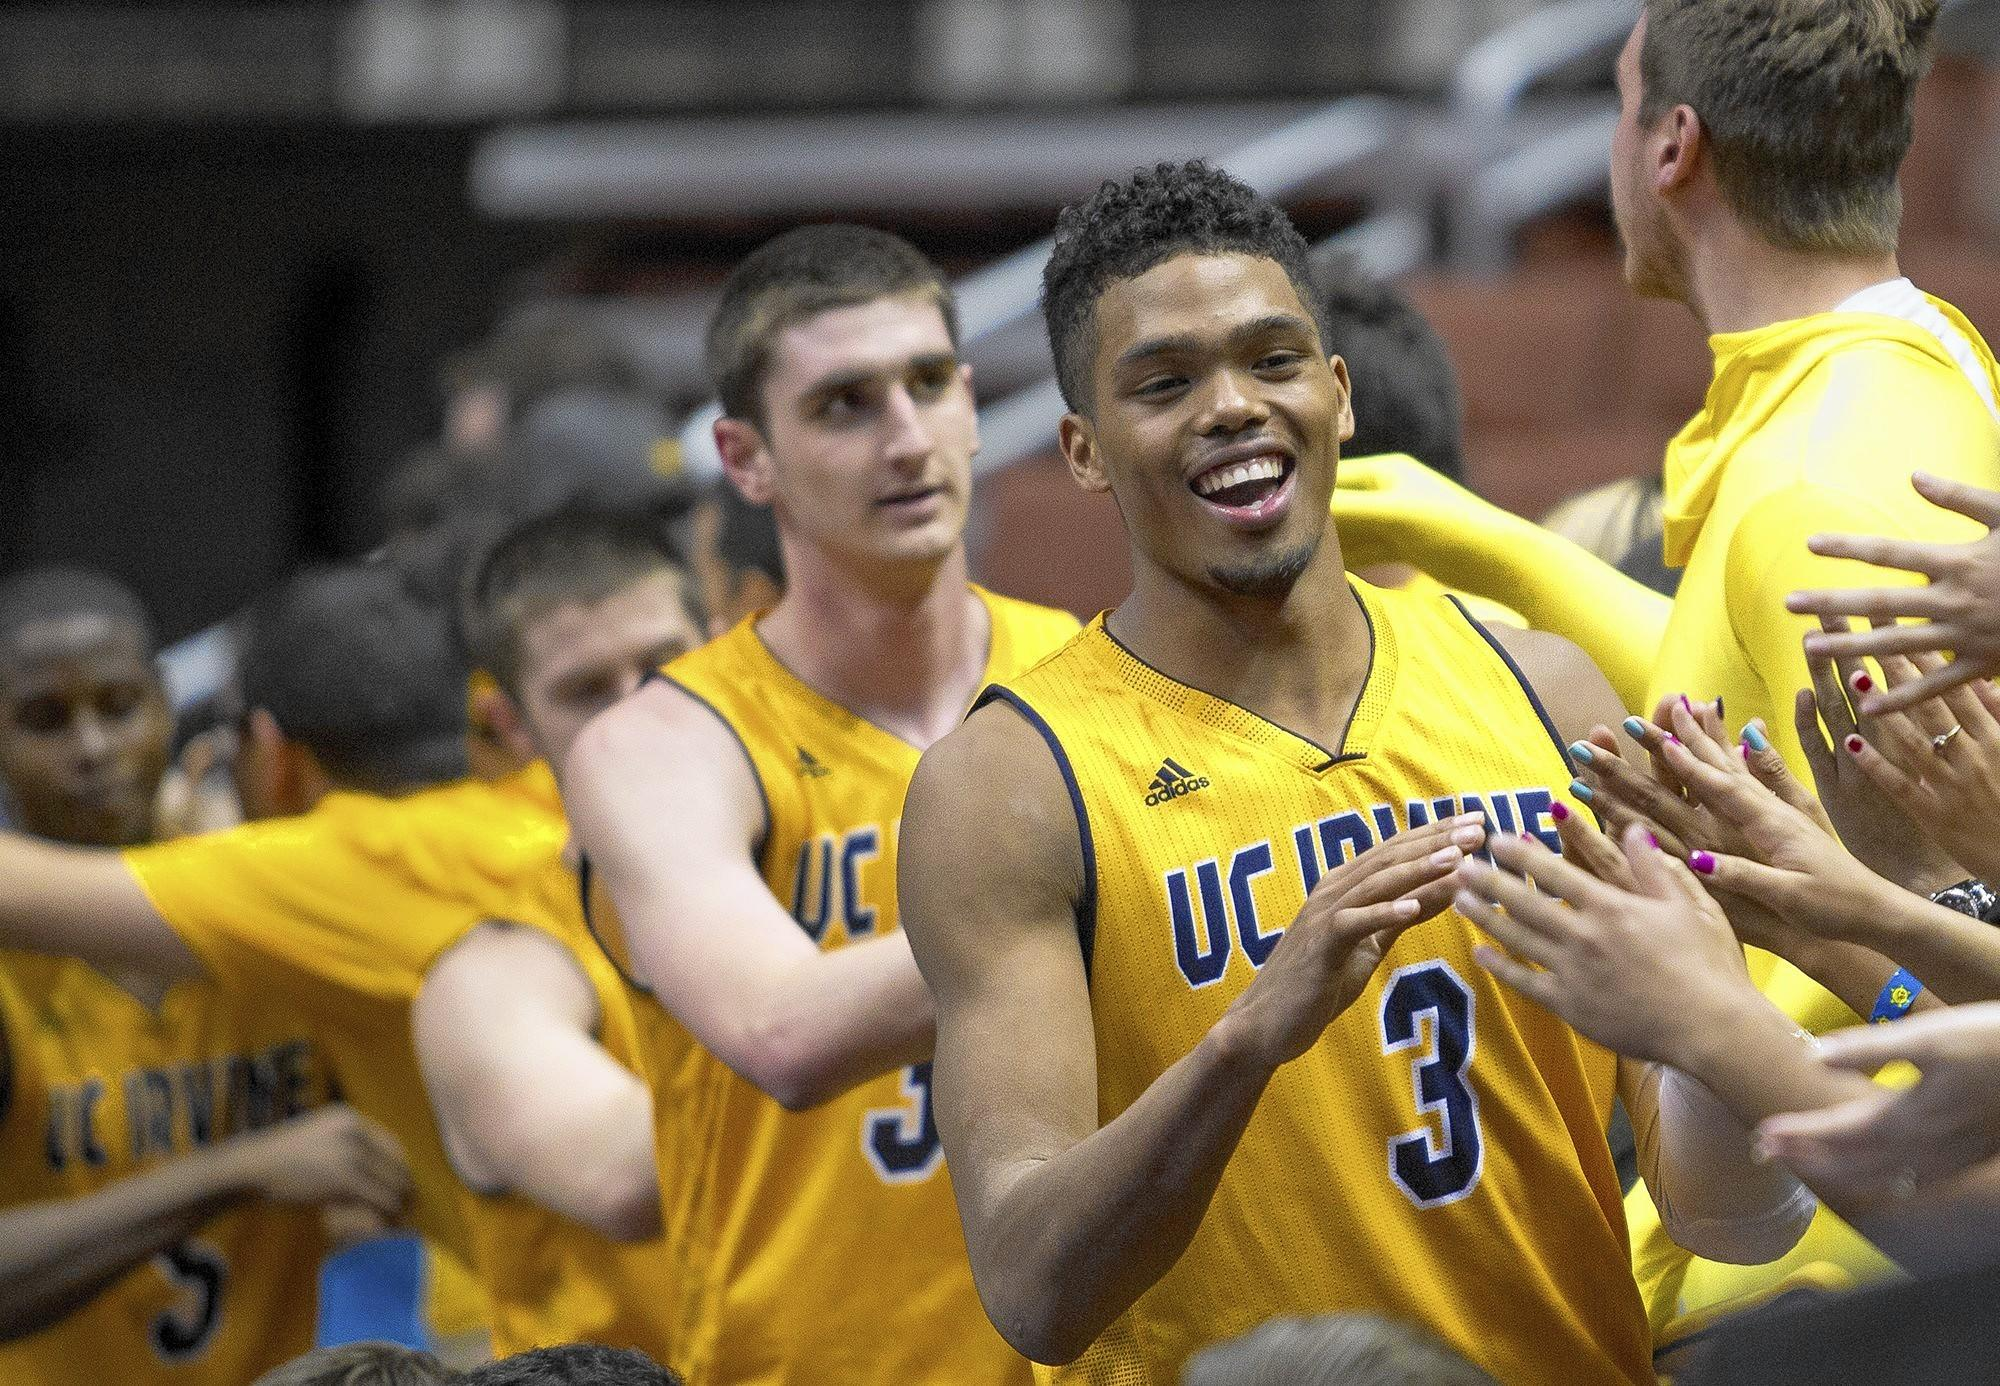 UC Irvine's Will Davis and teammates are congratulated by fans after beating UC Riverside 63-43 to open the Big West Tournament on Thursday.